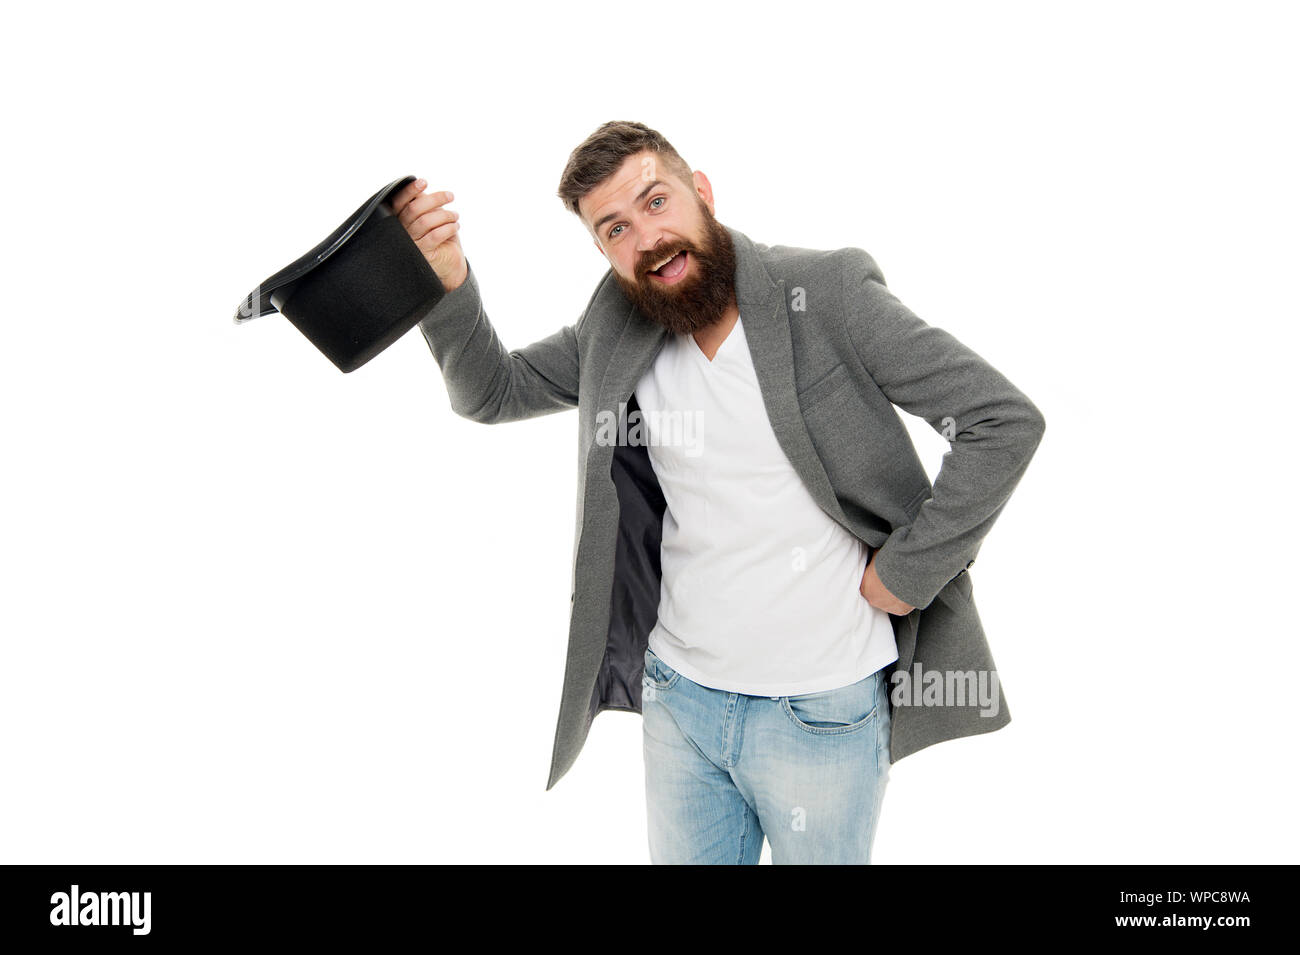 Man bearded guy magician. Magic trick performance concept. Circus magic trick performance. Entertainment and theatre. Magic show. Master of cunning tricks. Time traveller. Street performance. Stock Photo